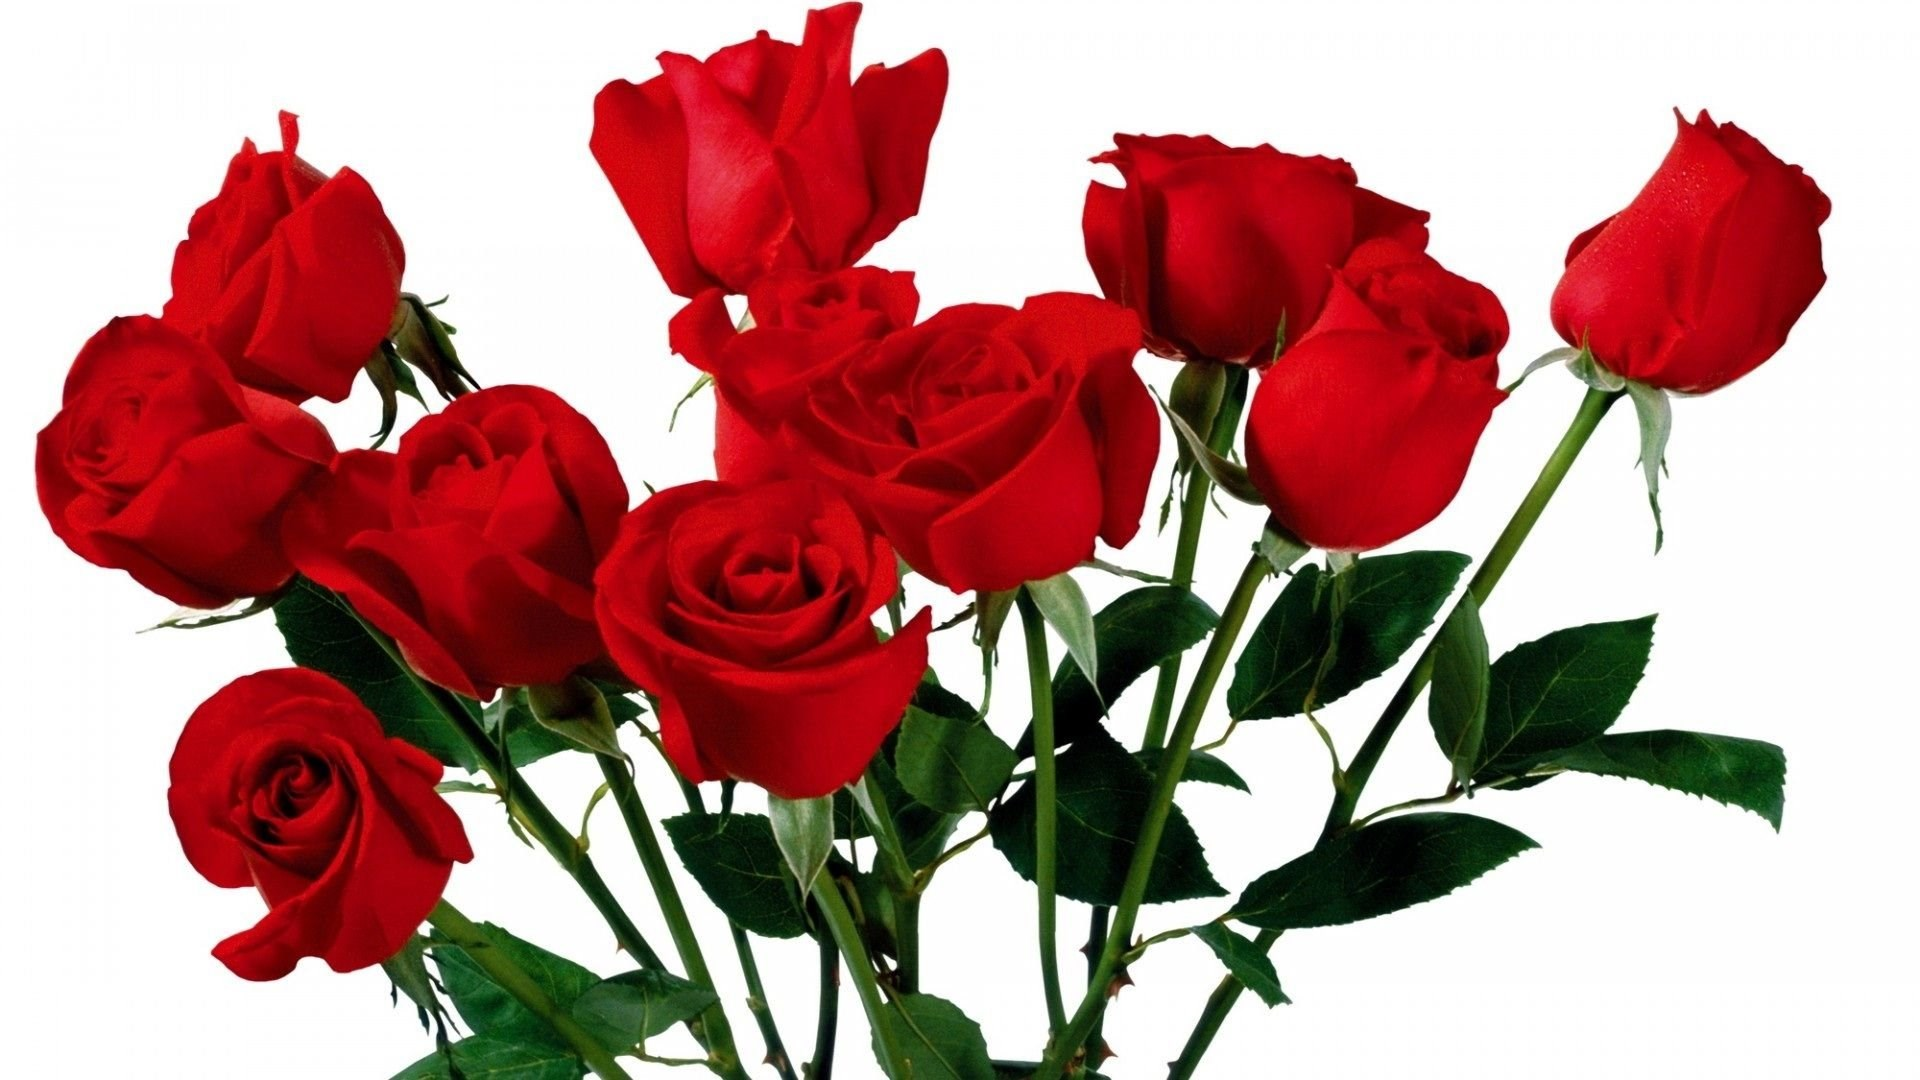 Roses Flower Most Beautiful Pure Hd Wallpapers Desktop Background